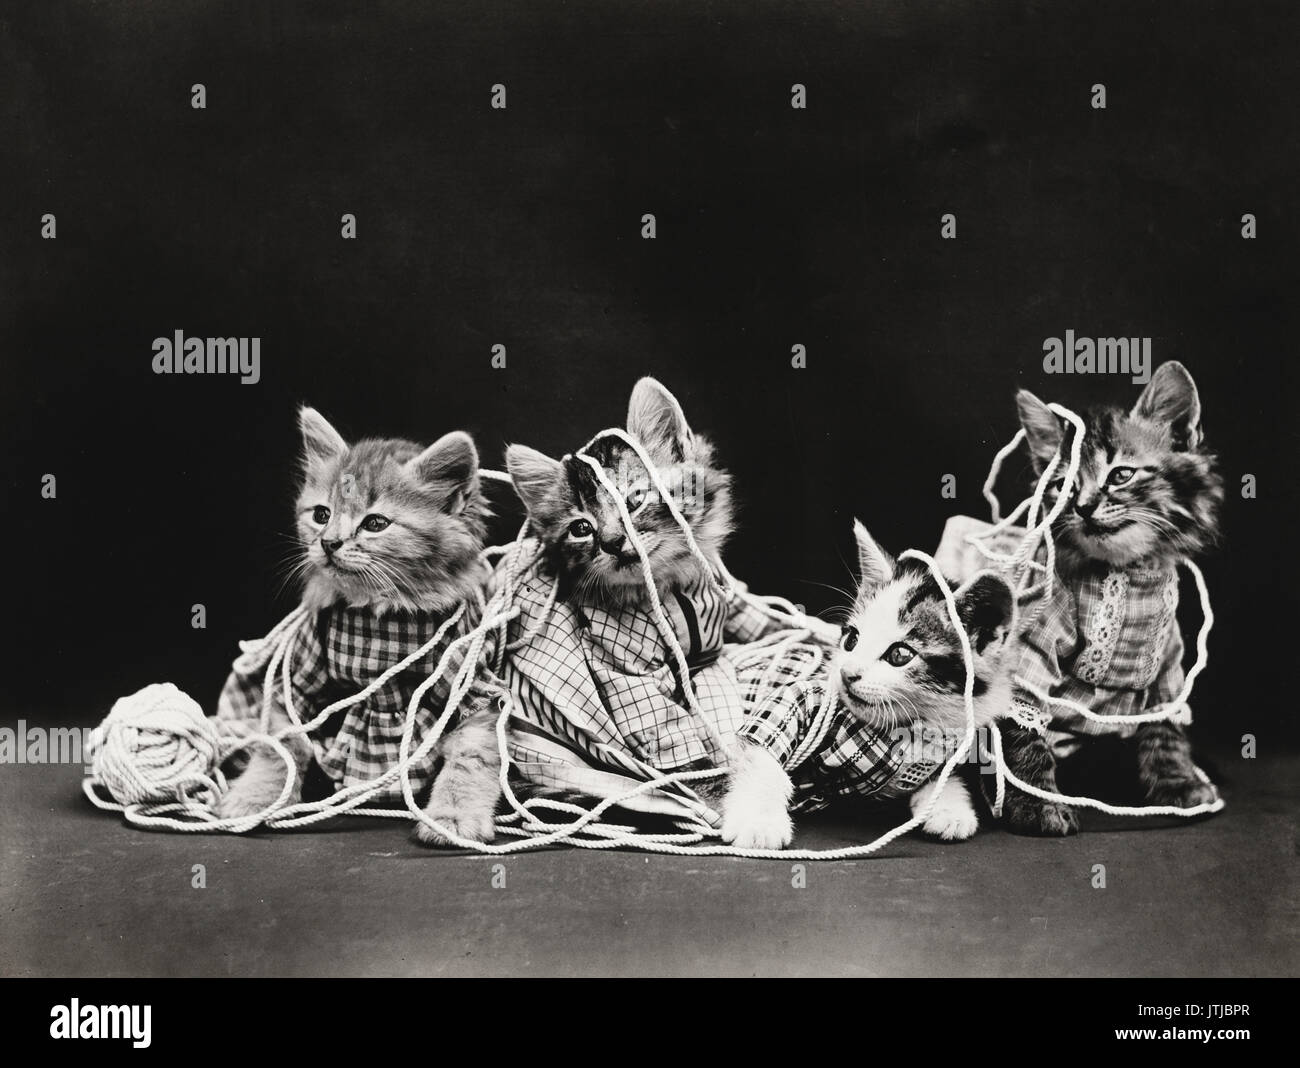 The Entanglement - Vintage Photo of Four kittens wearing clothes playing with a ball of twine. - Stock Image